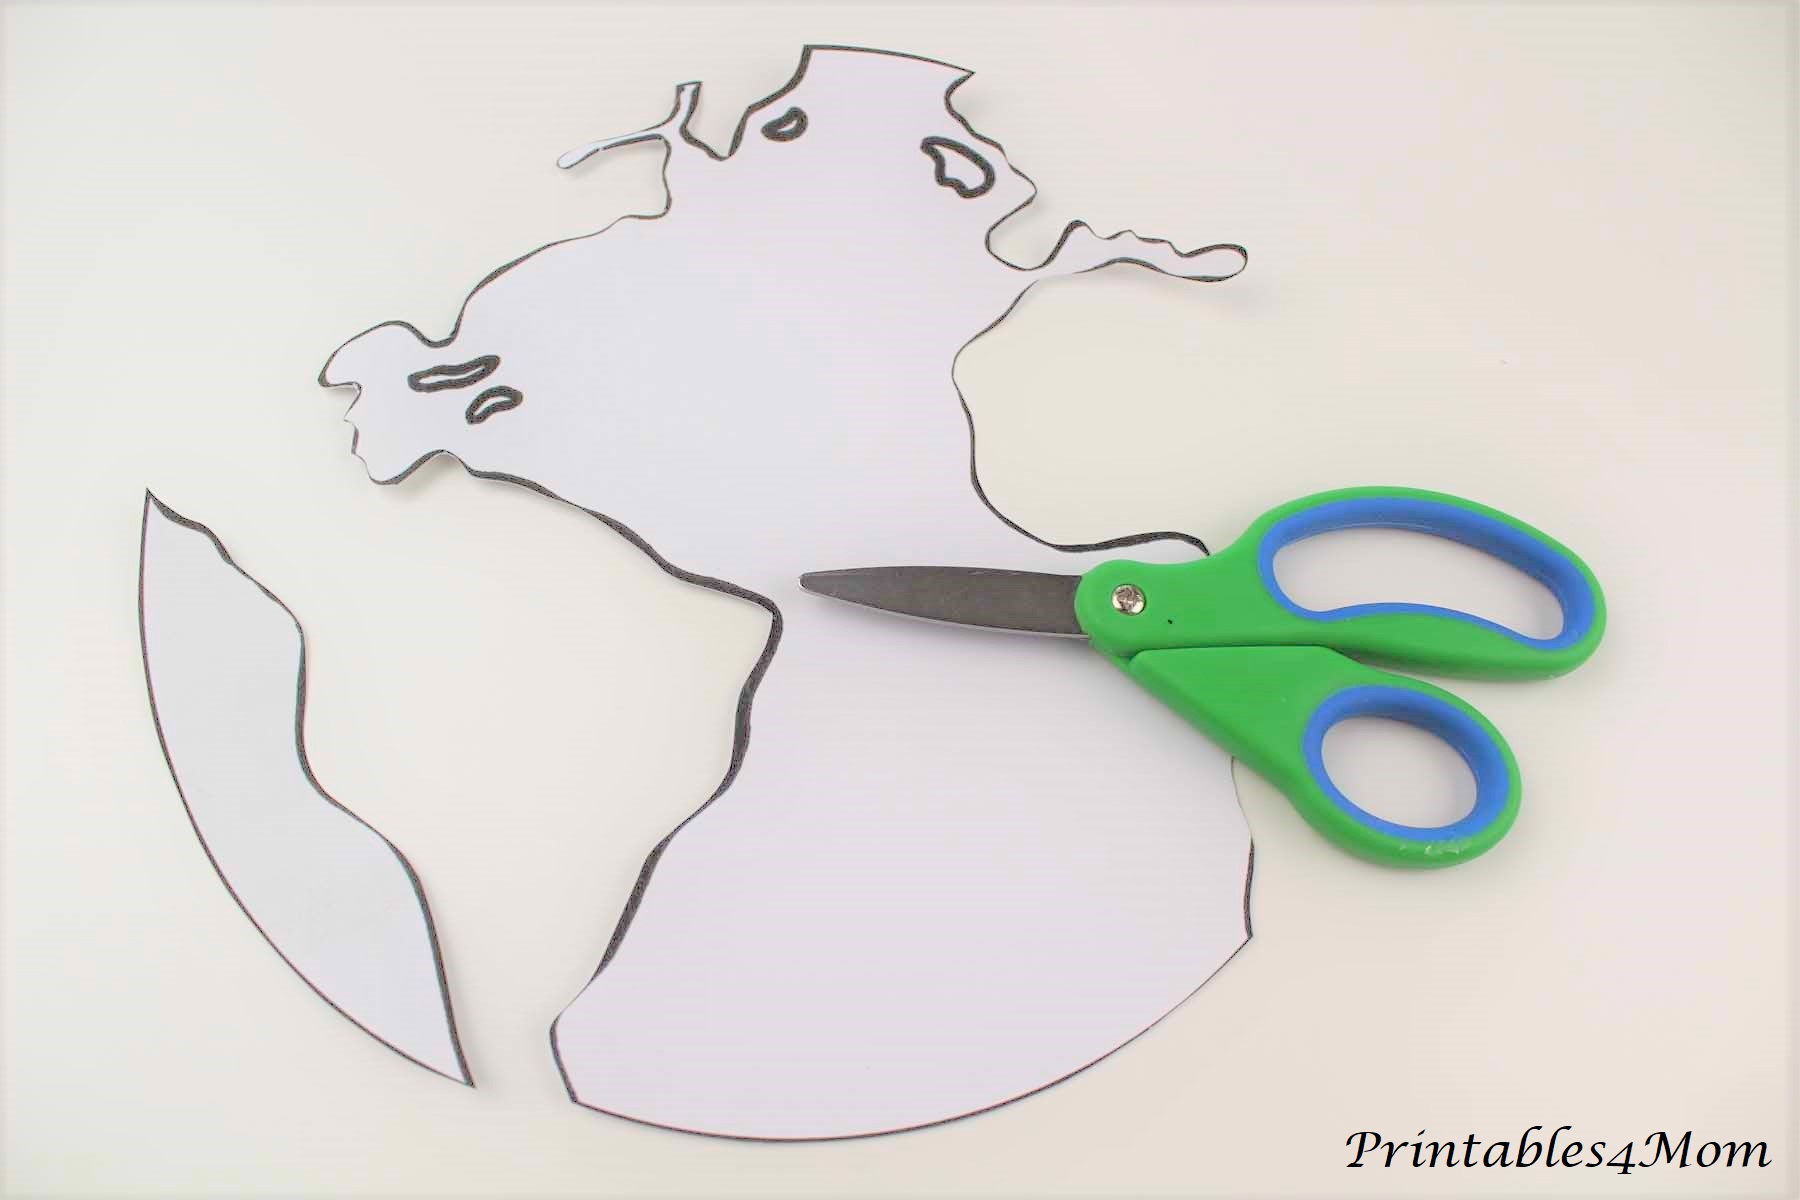 Paper Plate Earth Painting with Printable Template - Printables 4 Mom